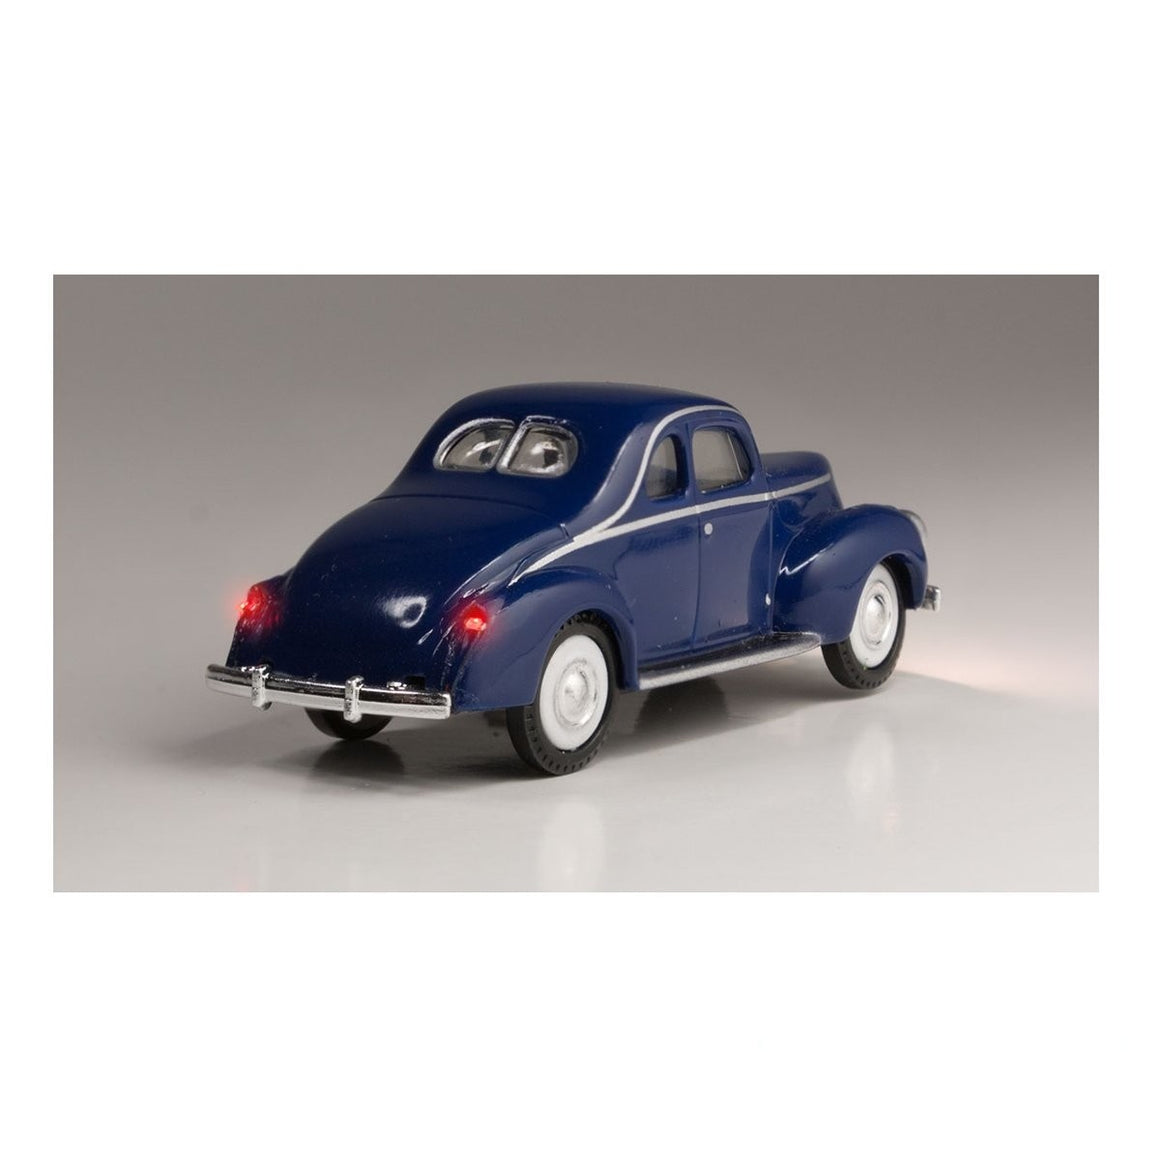 HO Scale: Just Plug® - Lighted Vehicle: Blue Coupe